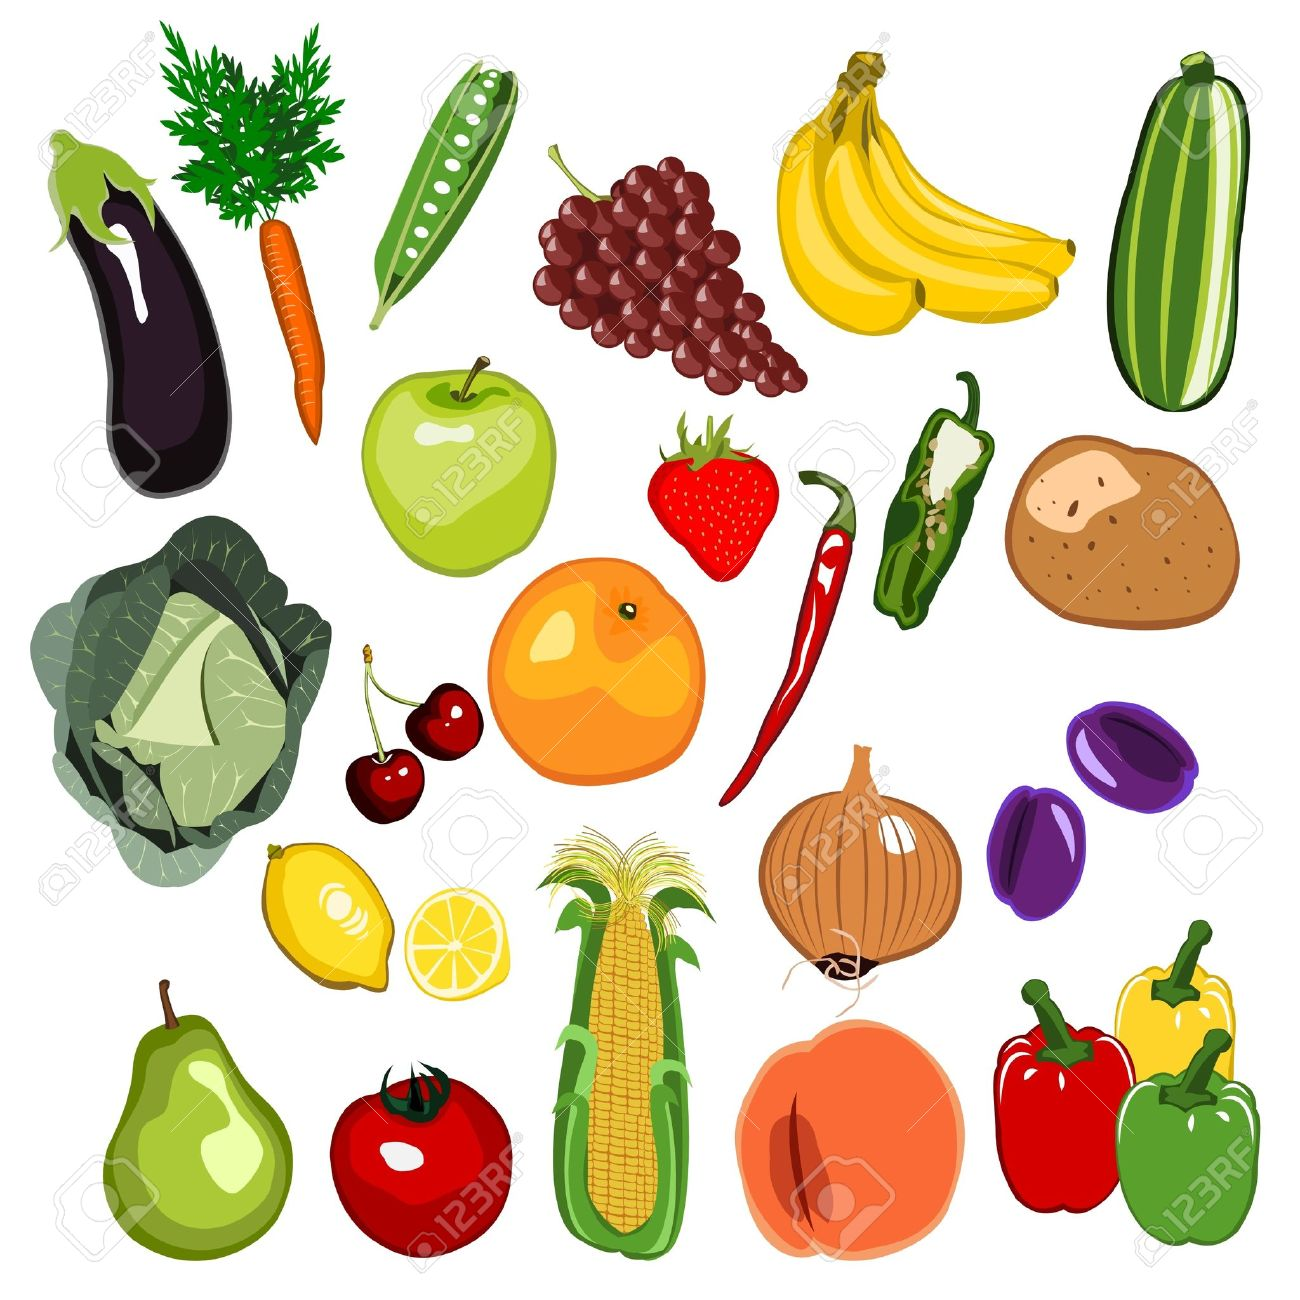 Fruit And Vegetable Clipart - More information